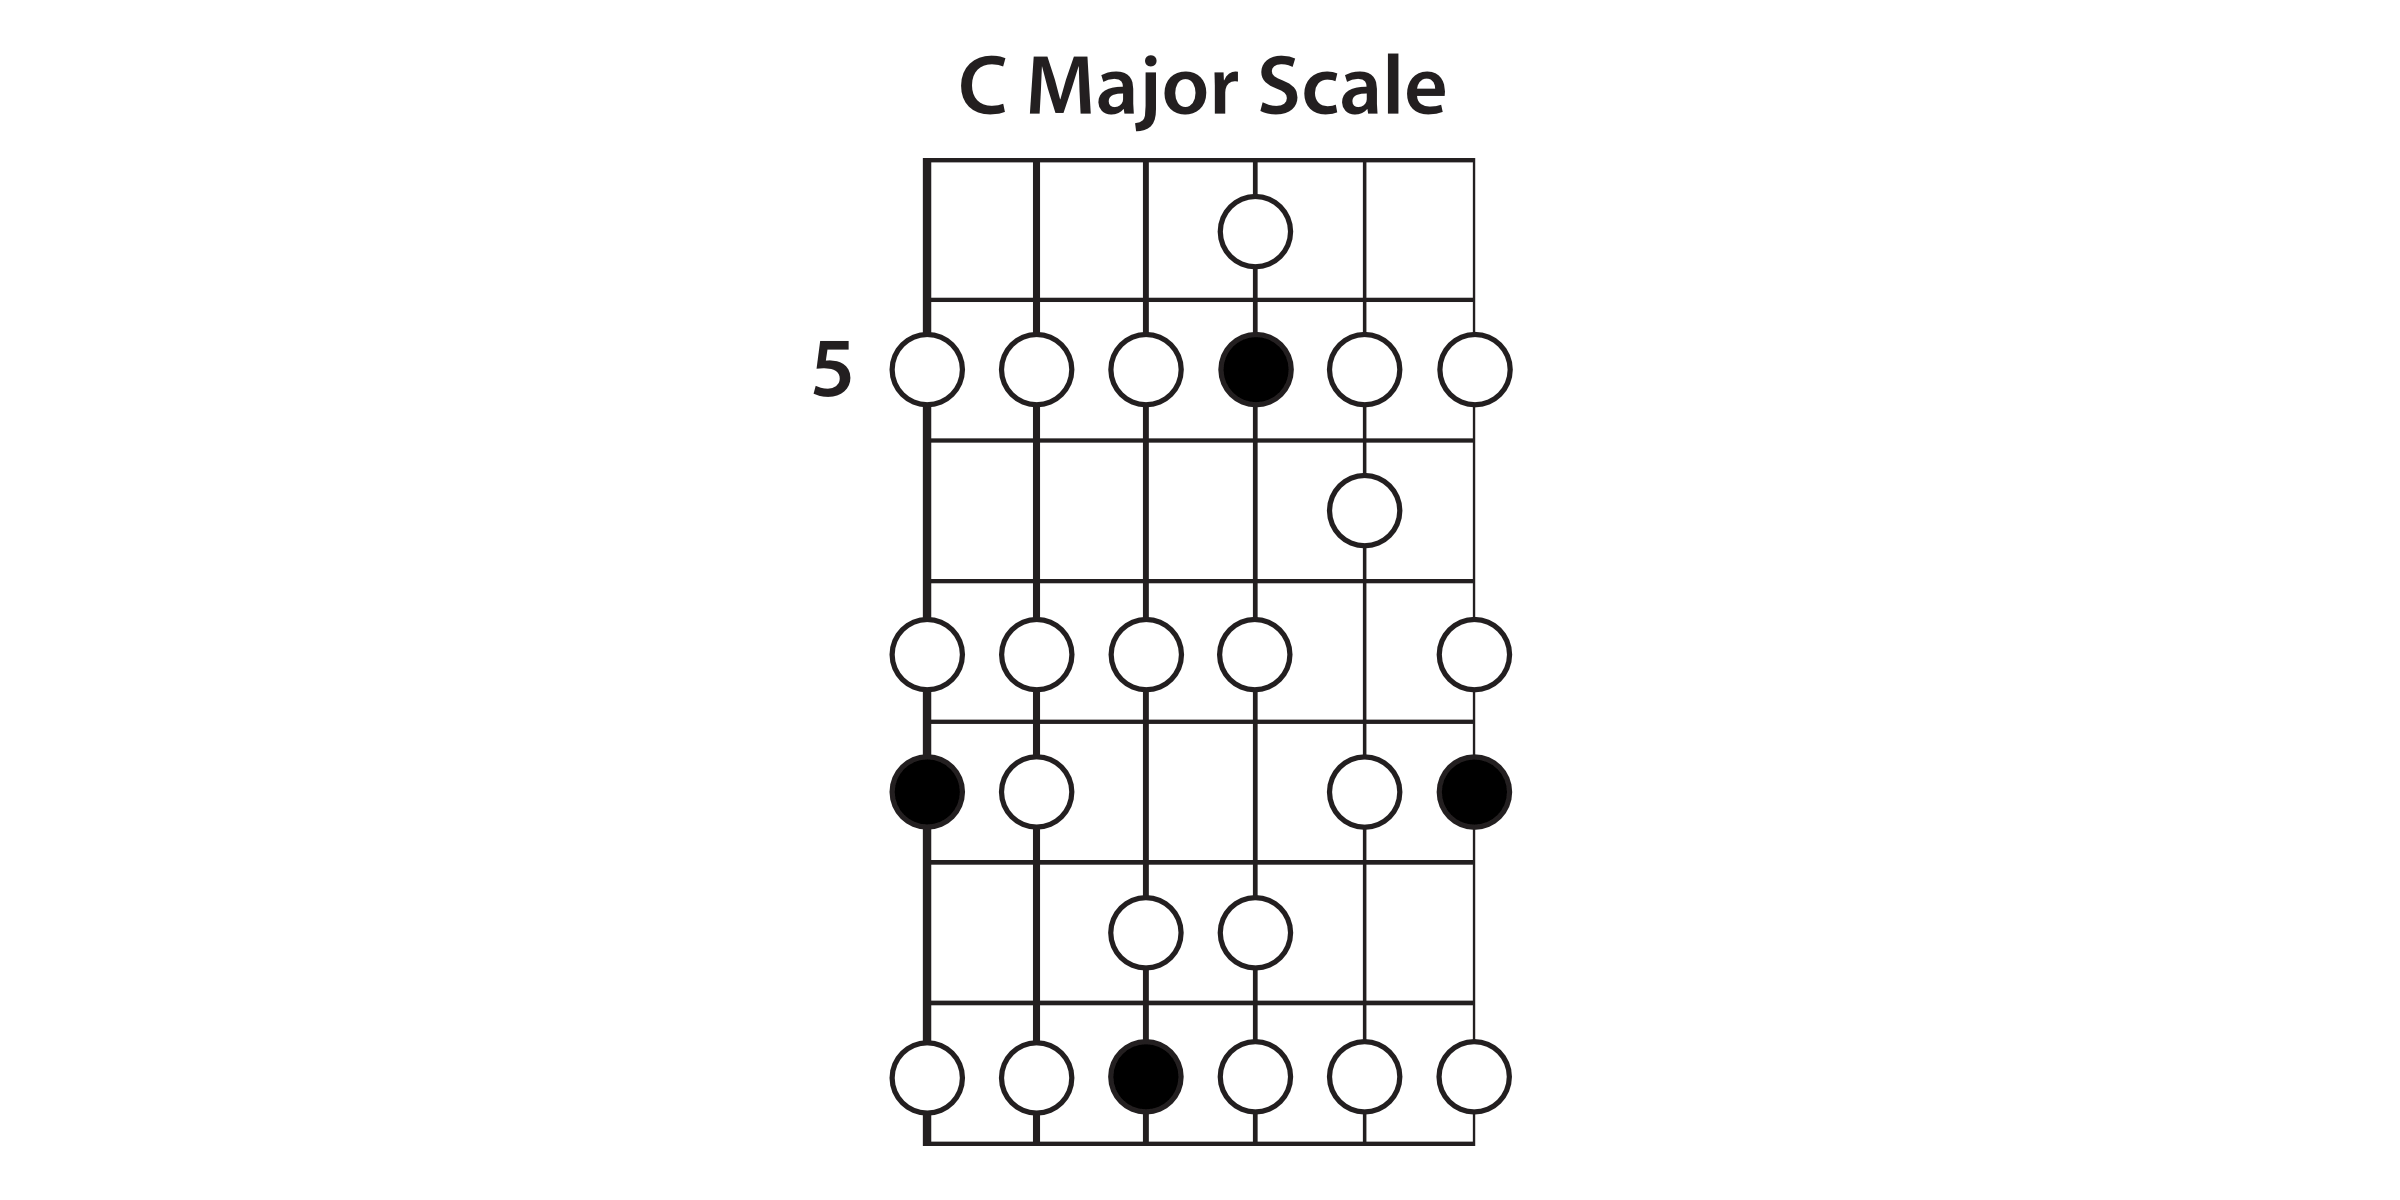 Extended C Major Scale